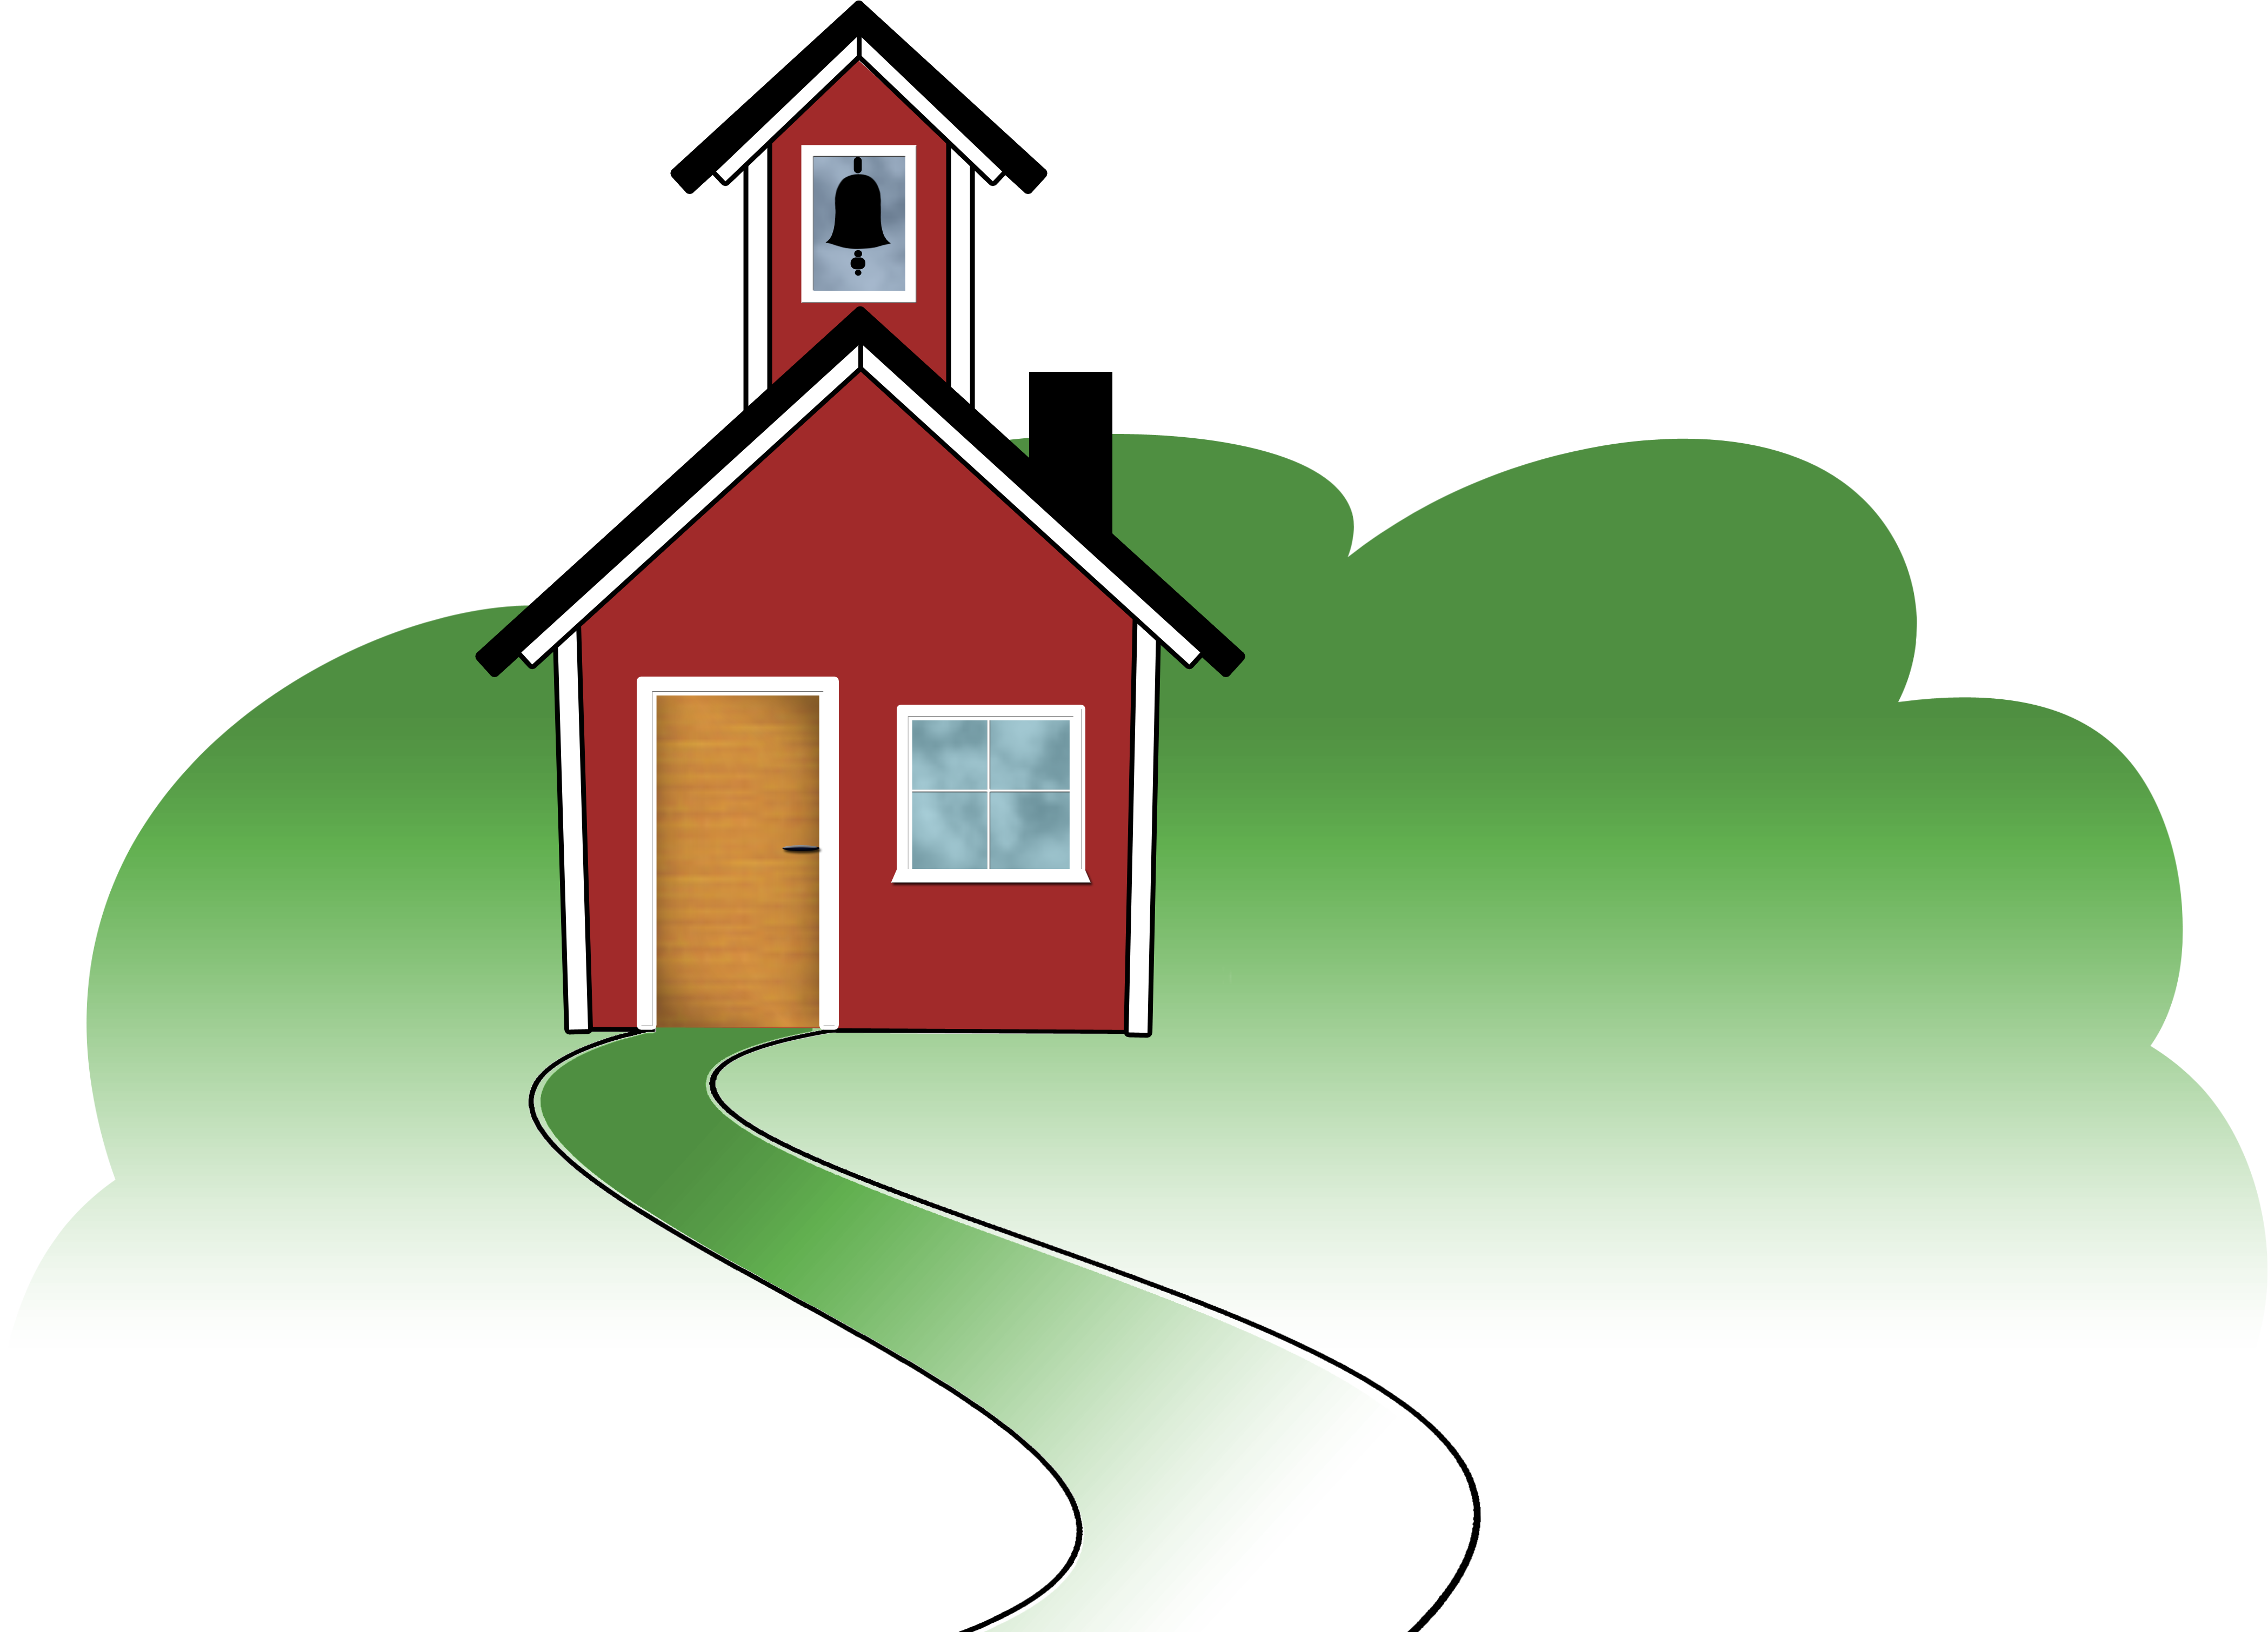 Angell s home logo. Schoolhouse clipart school roof